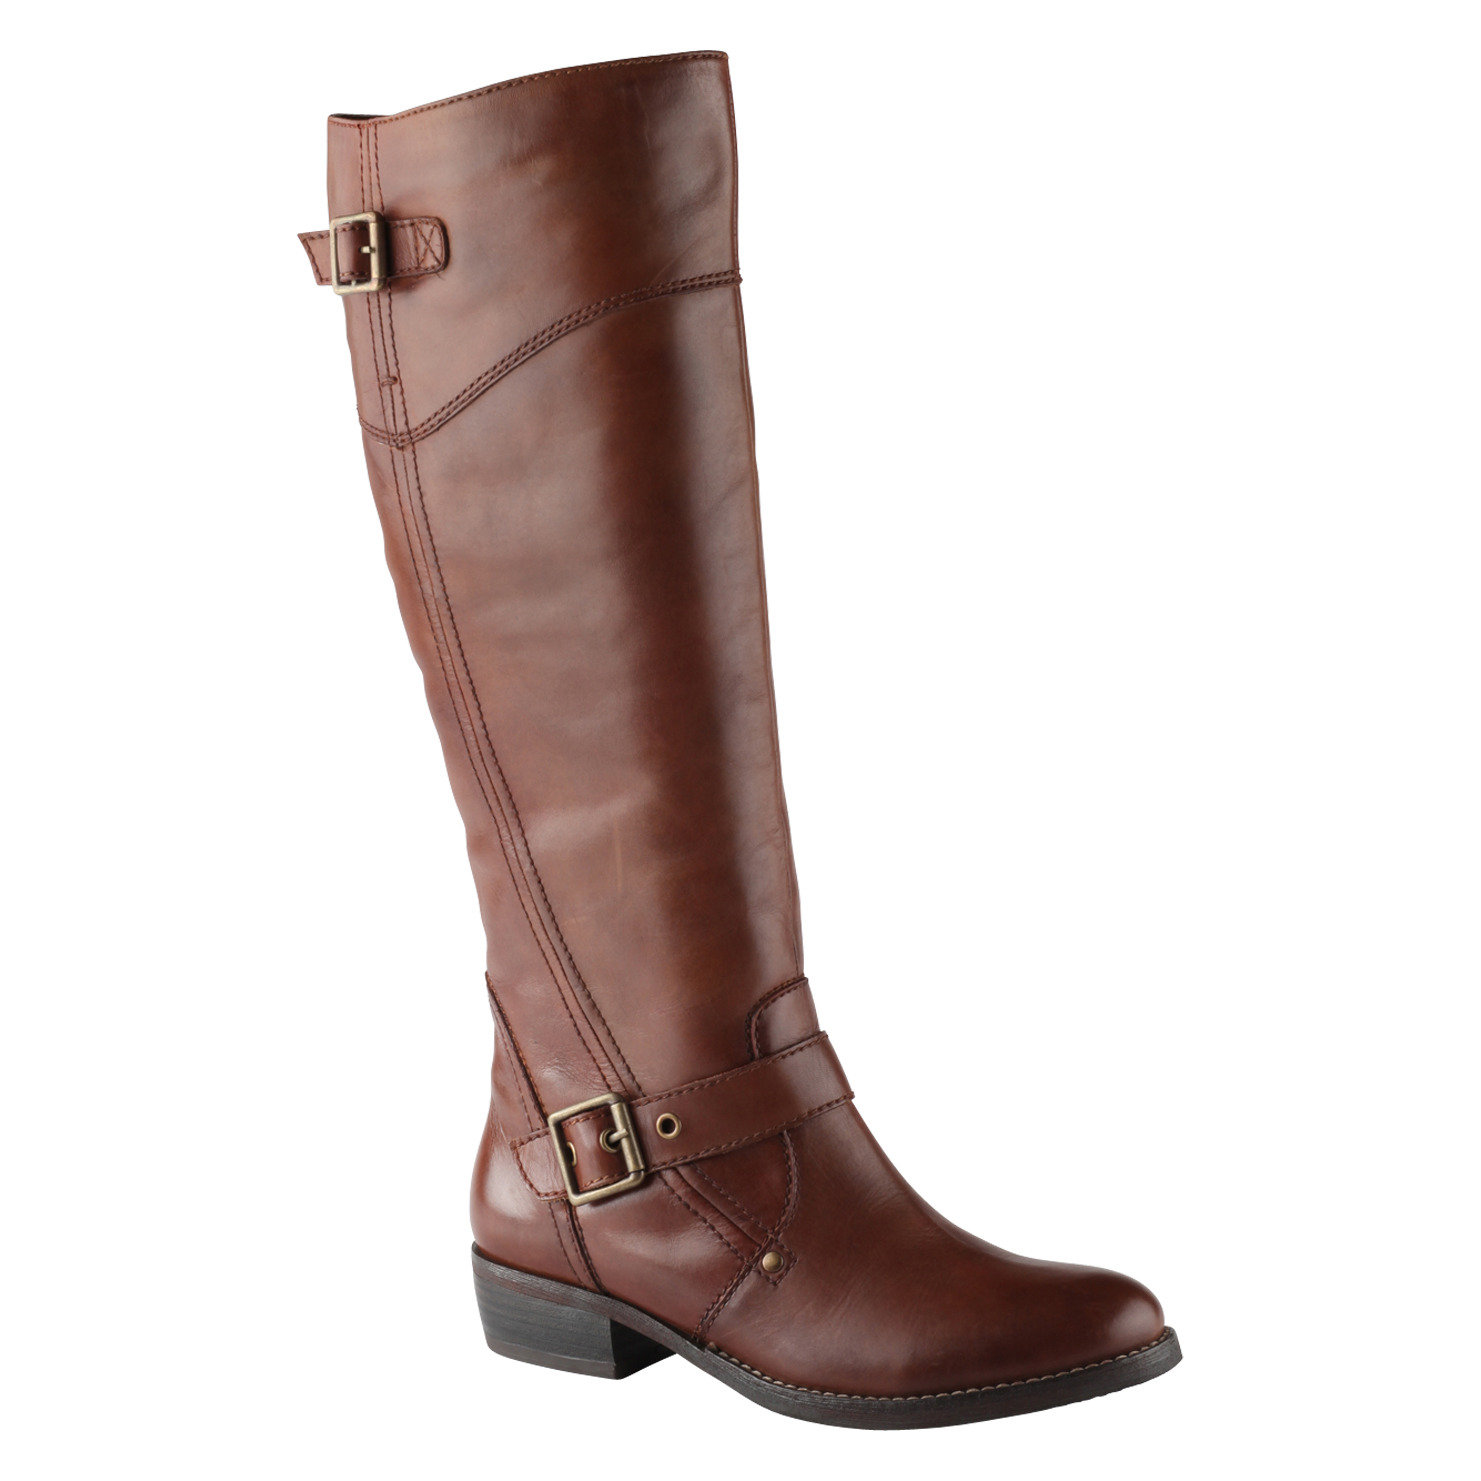 gricia s boots boots for from aldo epic